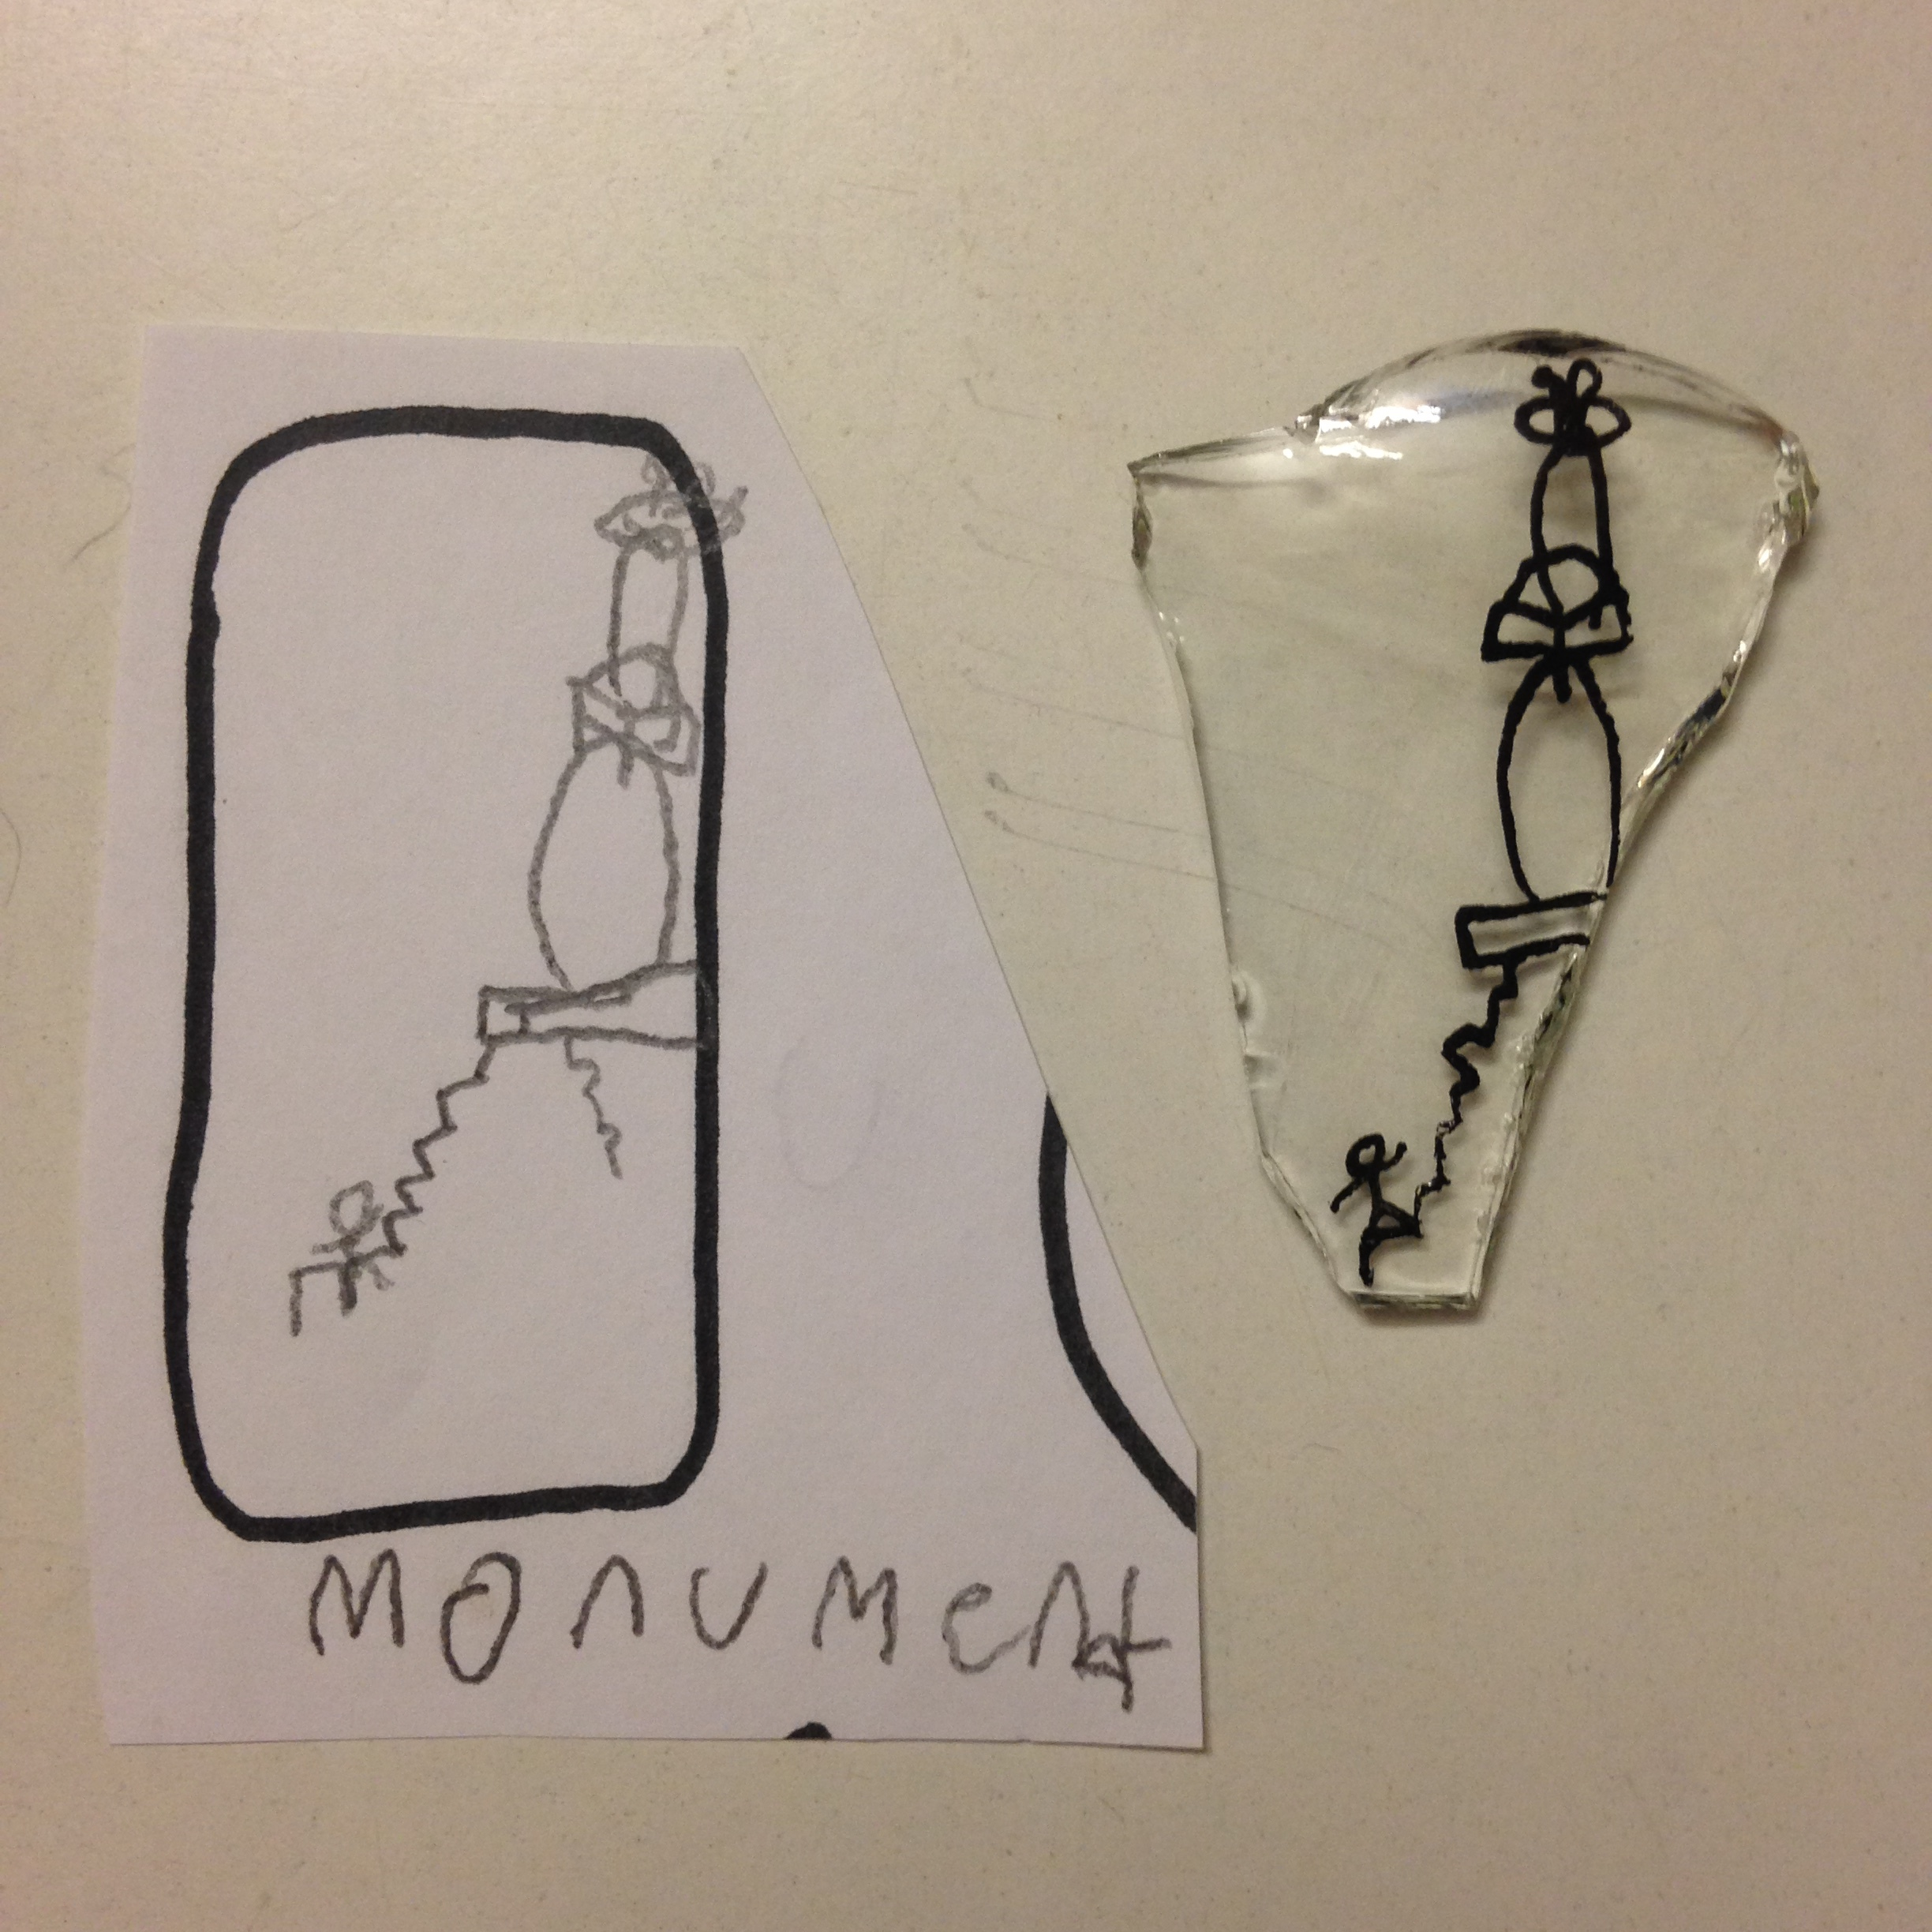 An example submission by a young Fort Greene resident, whose favorite place is the monument.